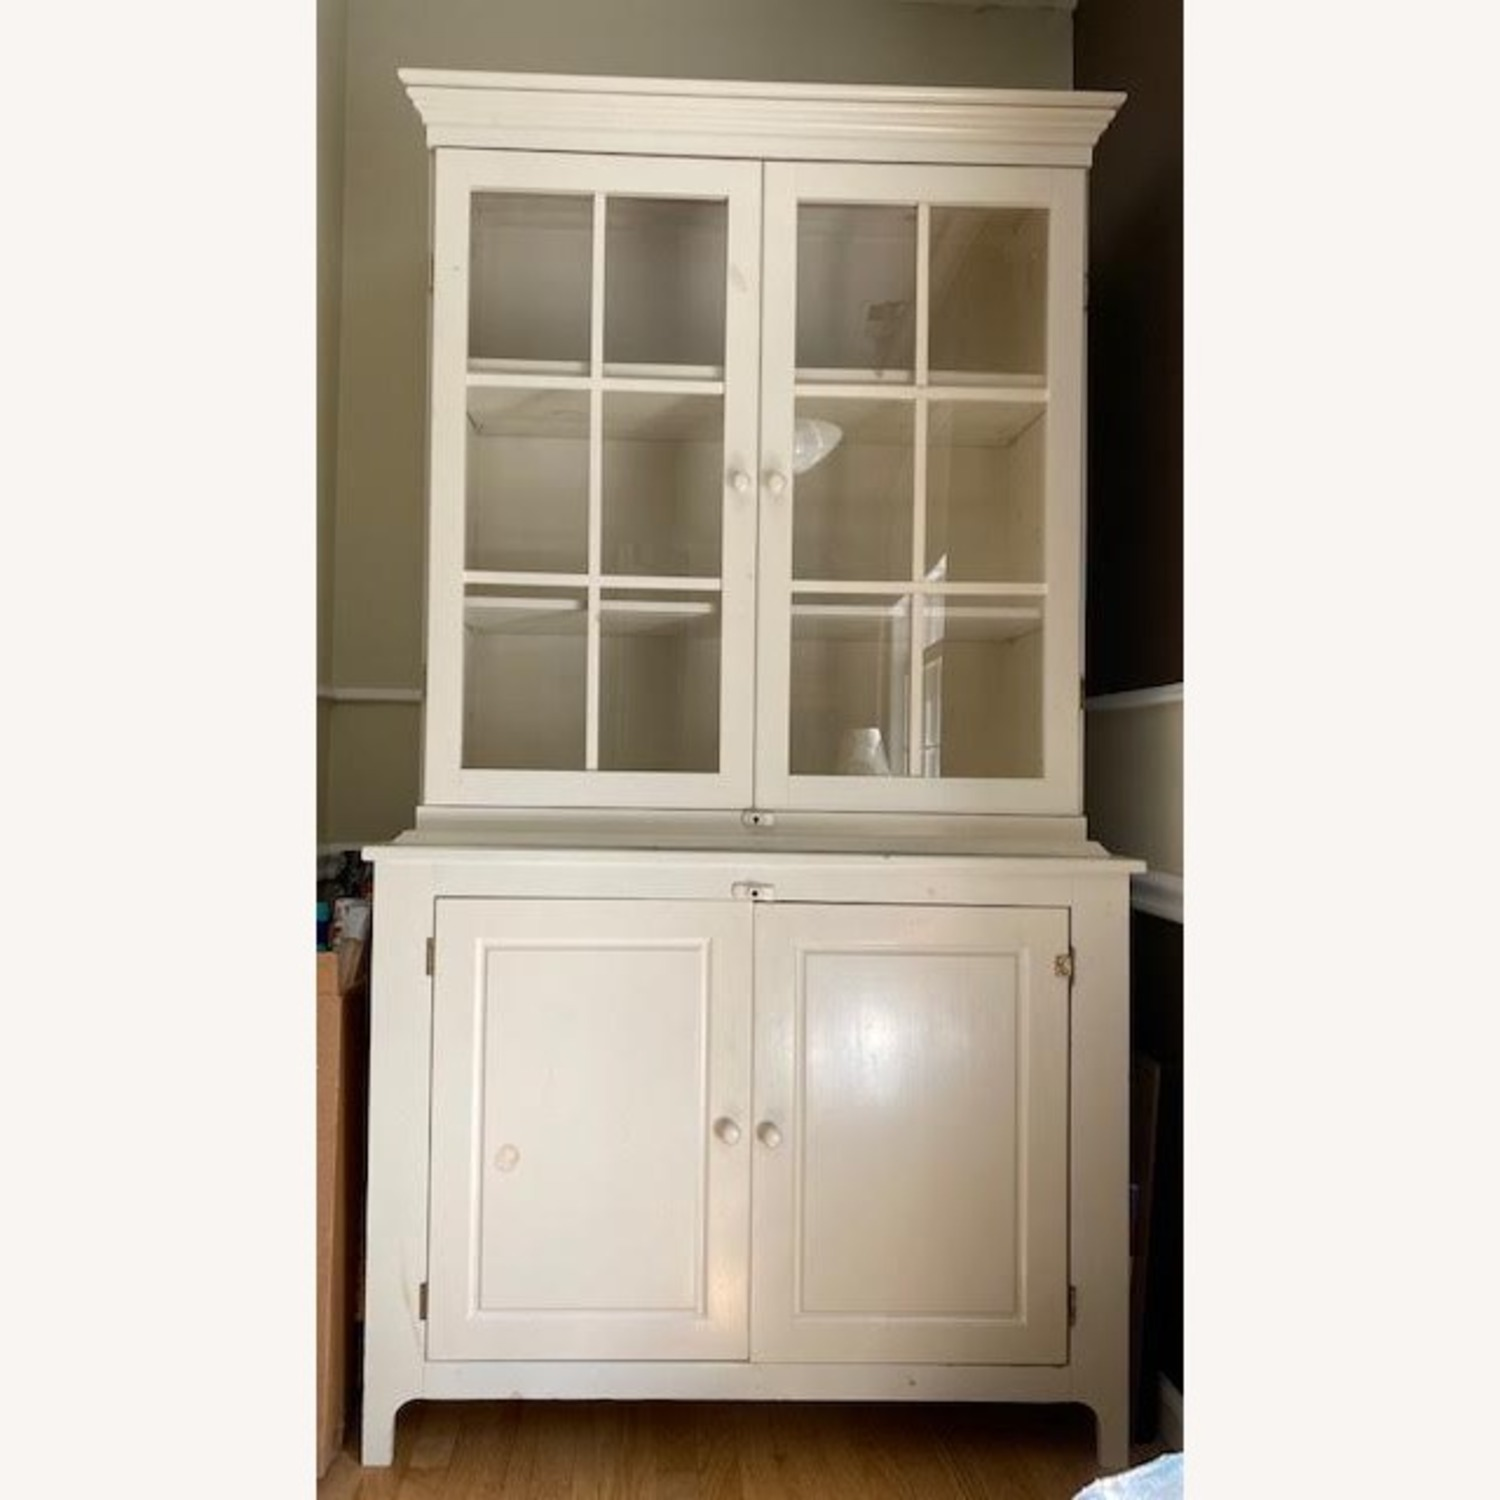 Hutch - Glass Front and Solid Doors with Shelving - image-1